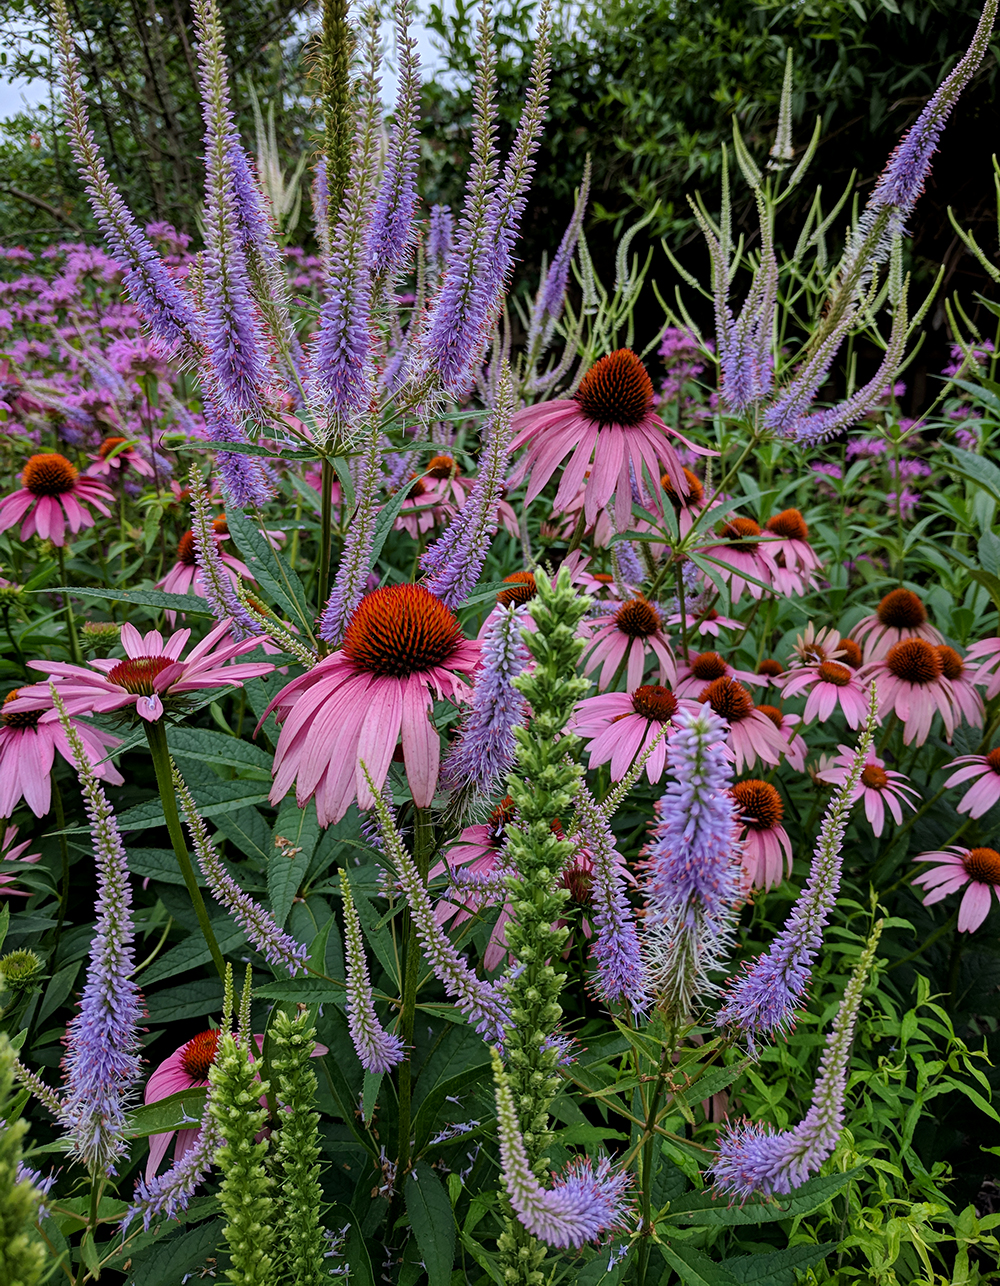 A little corner of my Pollinator Paradise: coneflowers, culver's root, and bee balm.